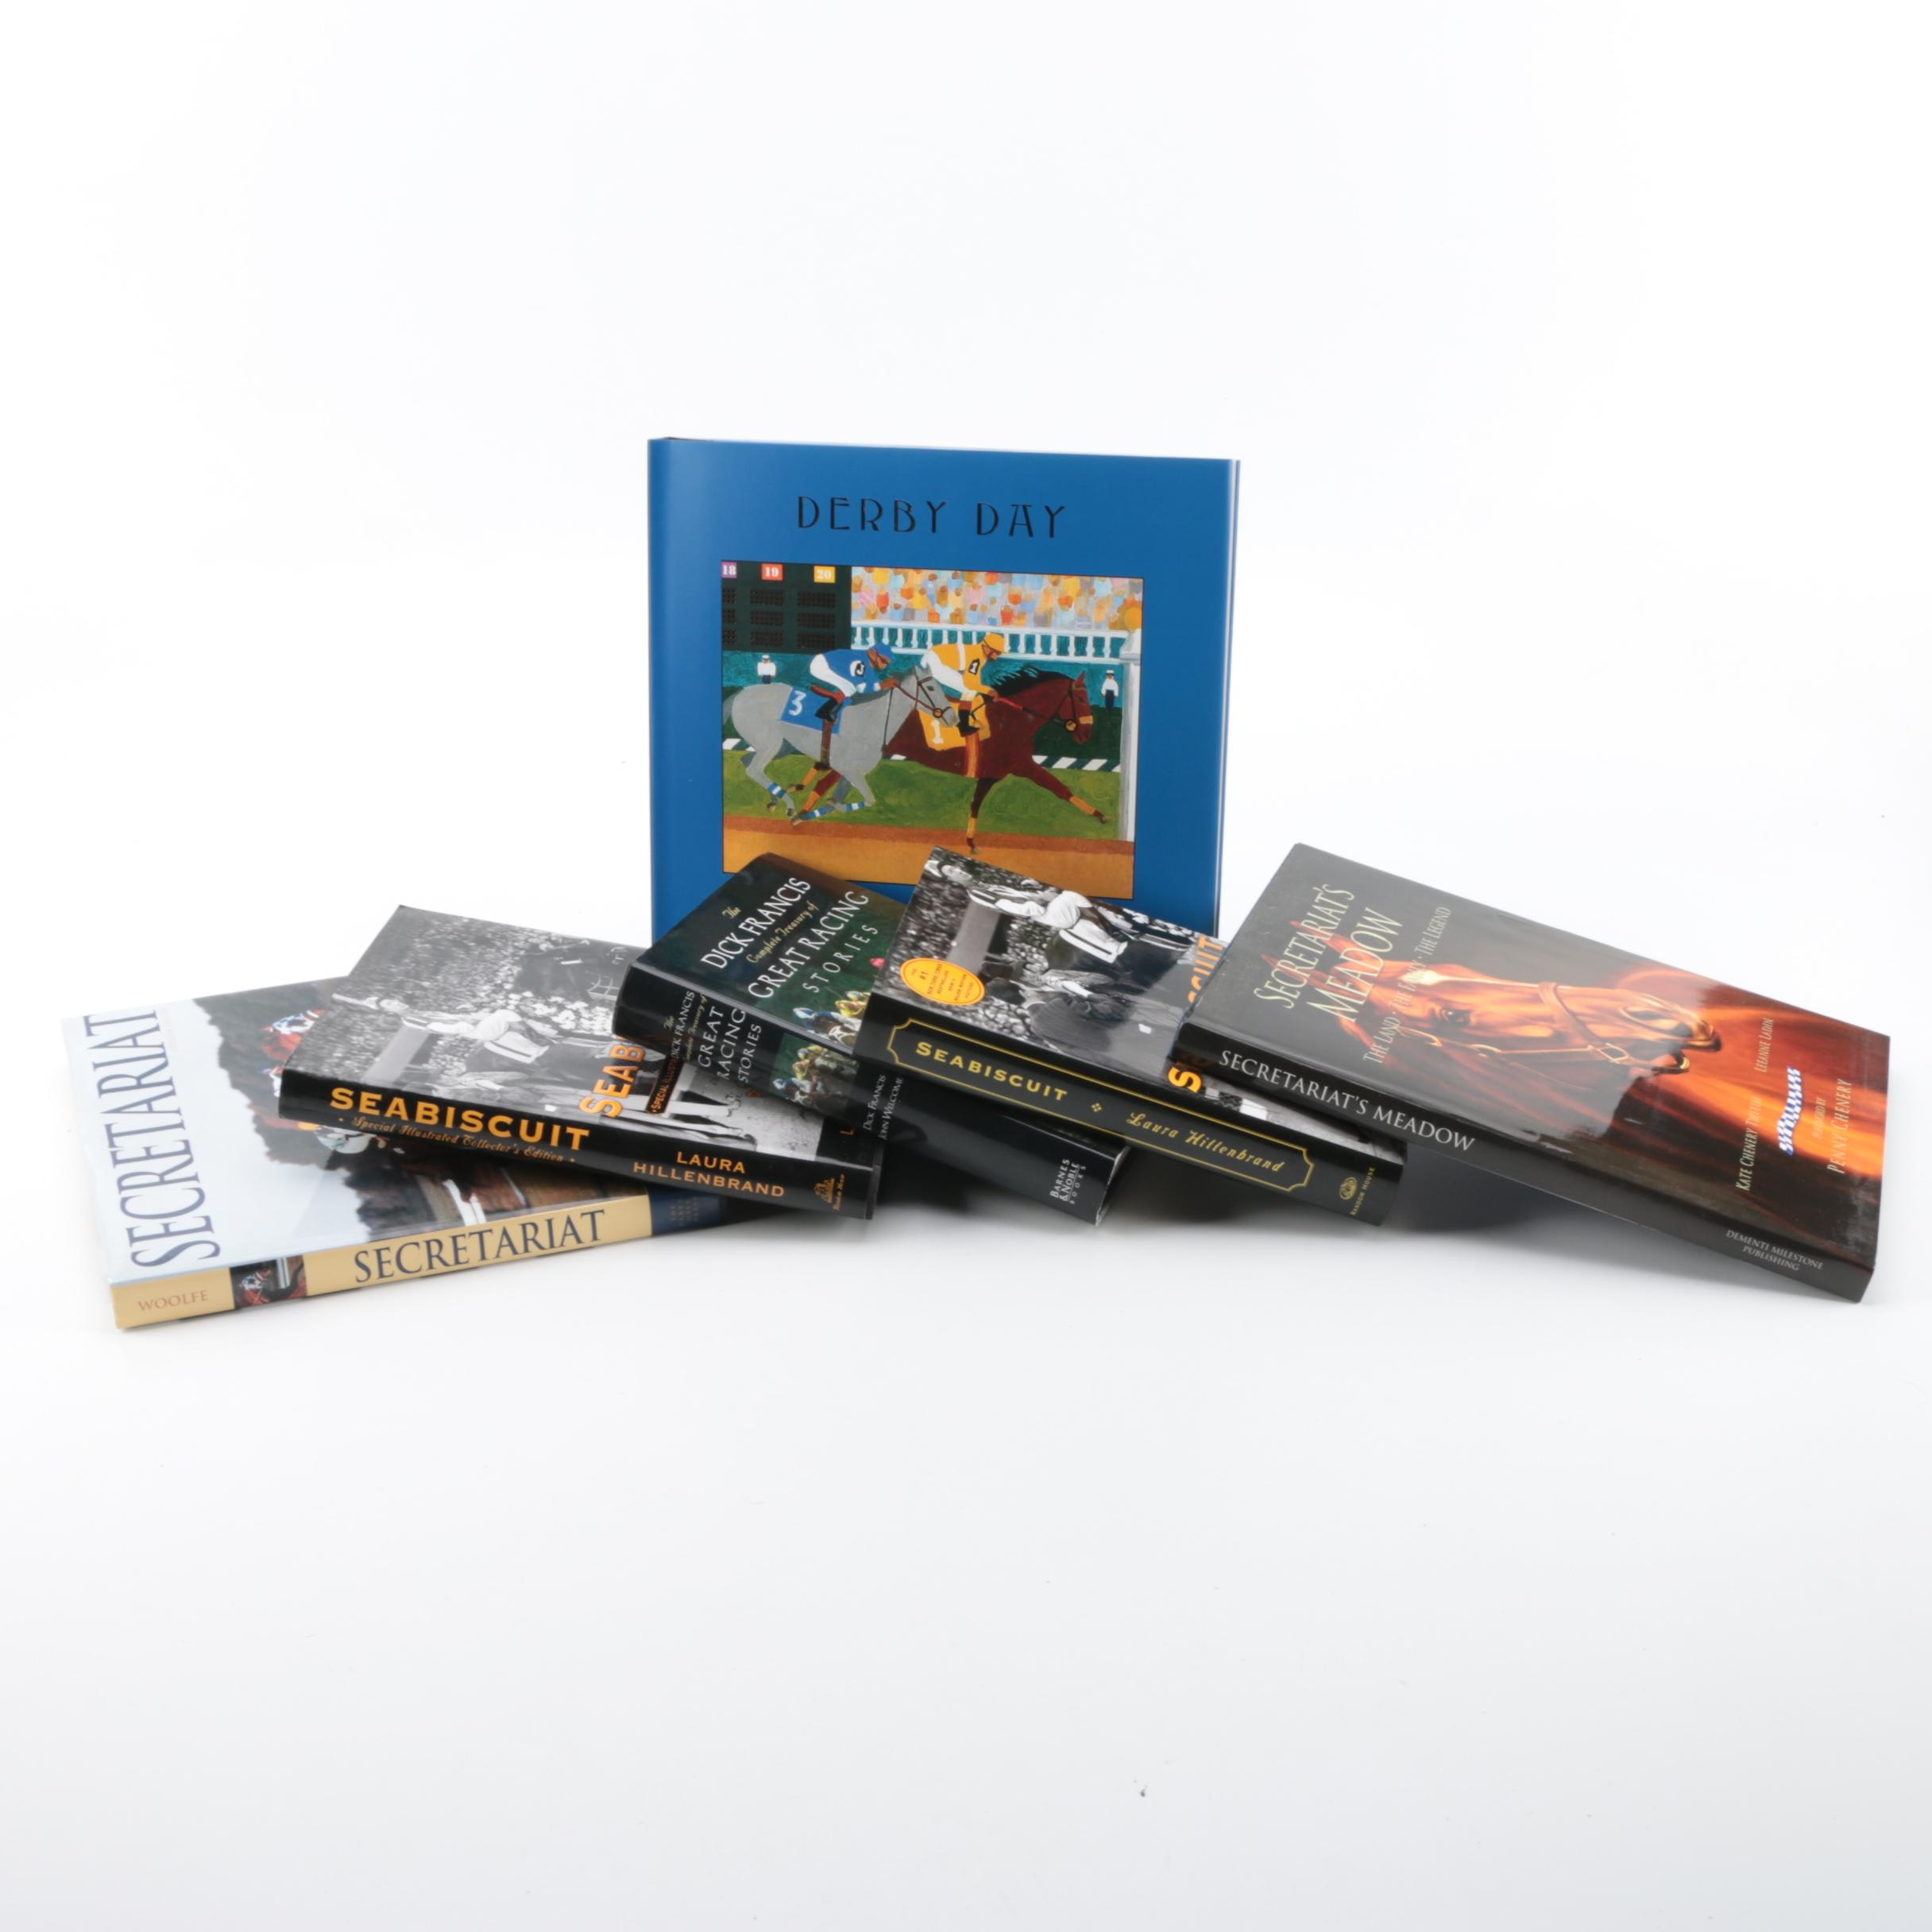 Assorted Hardcover Books on Horse Racing